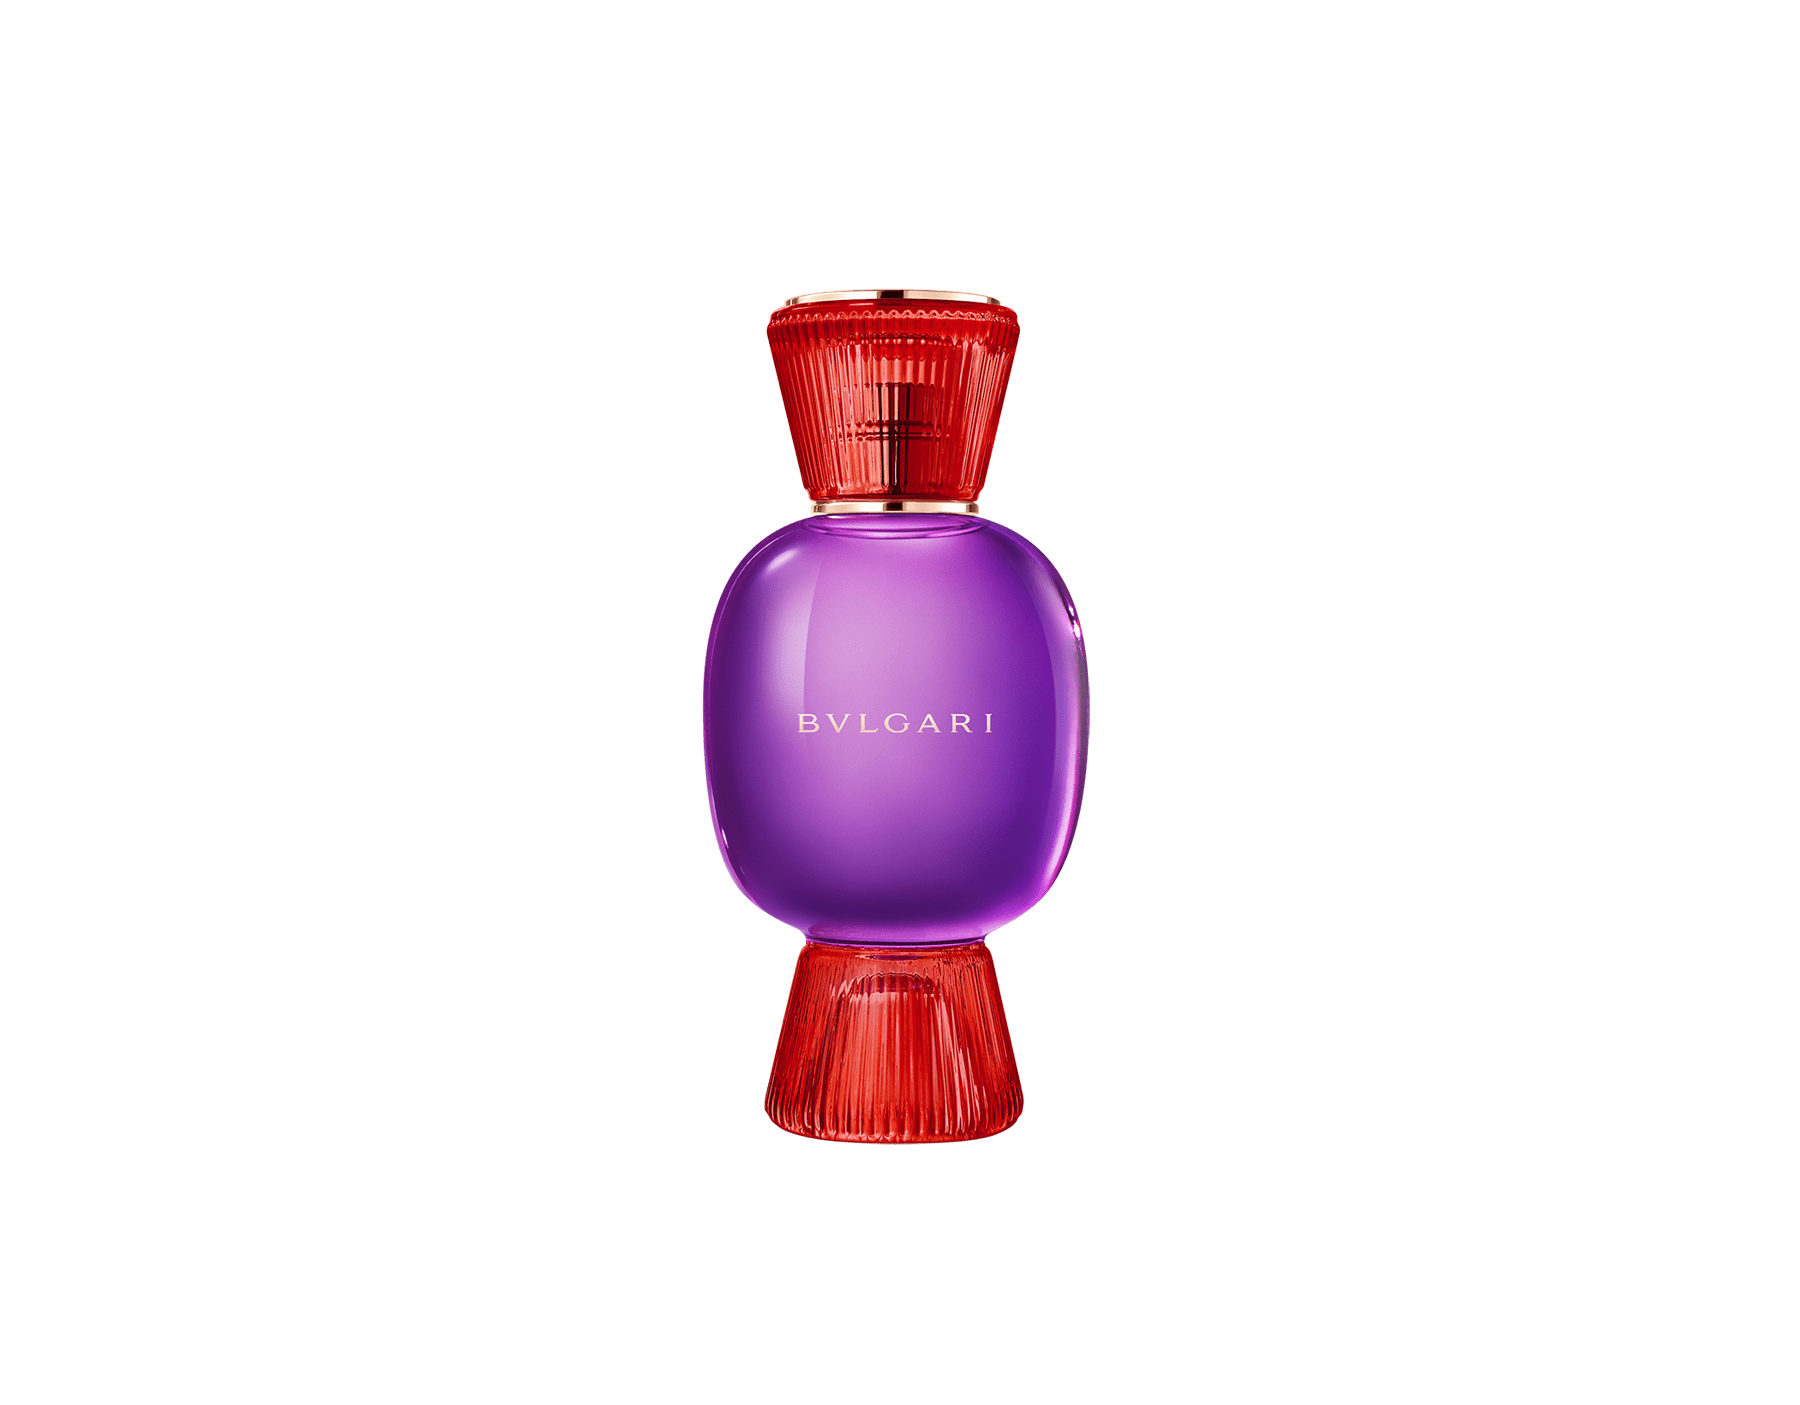 An exclusive perfume set, as bold and unique as you. The festive chypre Fantasia Veneta Allegra Eau de Parfum blends with the addictive aroma of the Magnifying Vanilla Essence, creating an irresistible personalised women's perfume. Perfume-Set-Fantasia-Veneta-Eau-de-Parfum-and-Vanilla-Magnifying image 2